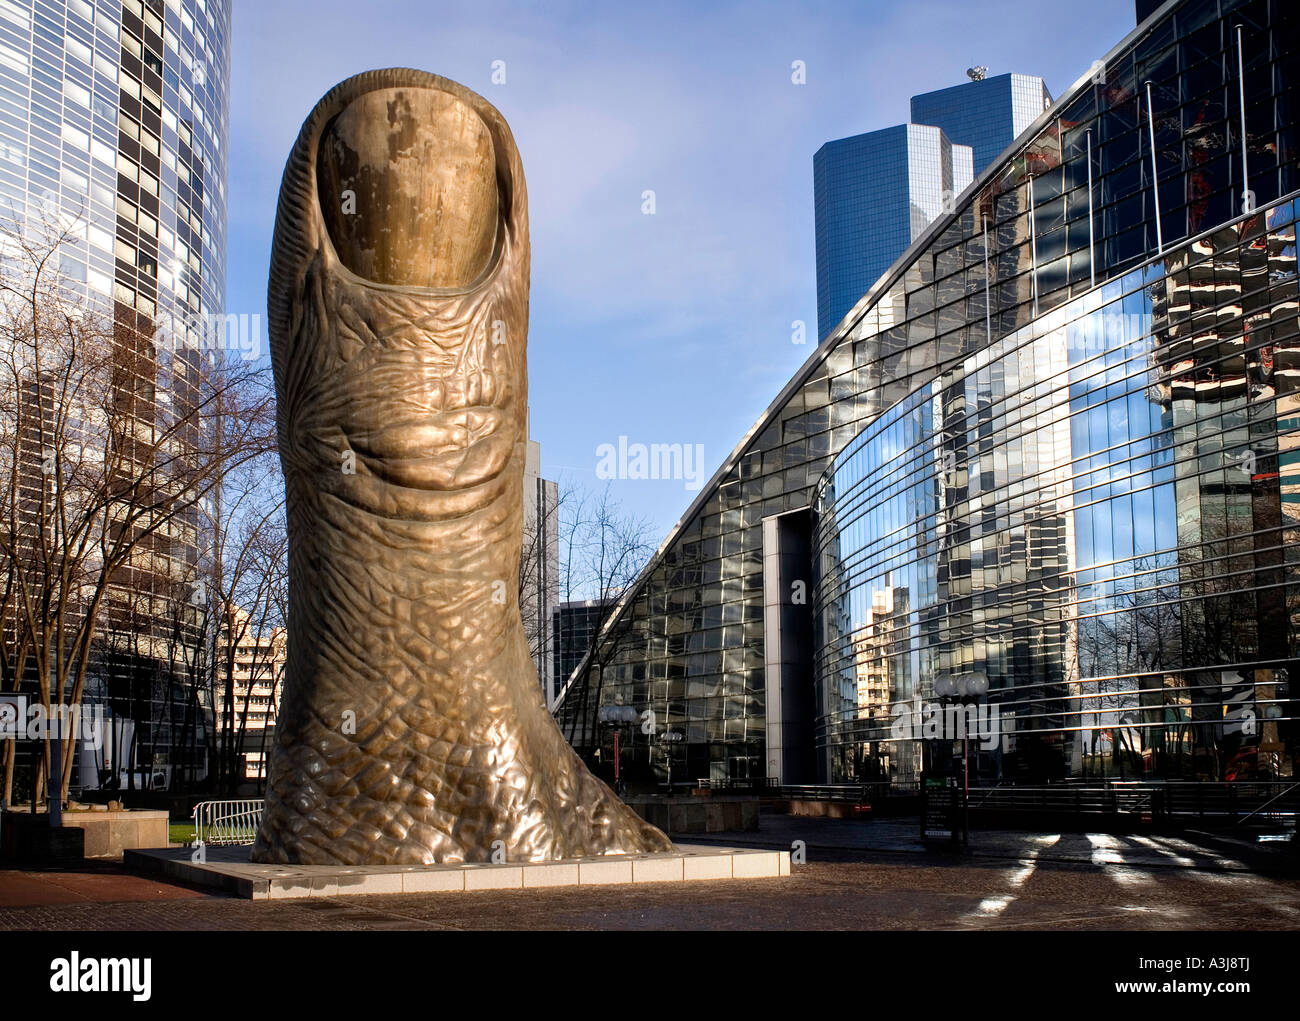 Giant Thumb Sculpture at La Defense, Paris, France - Stock Image